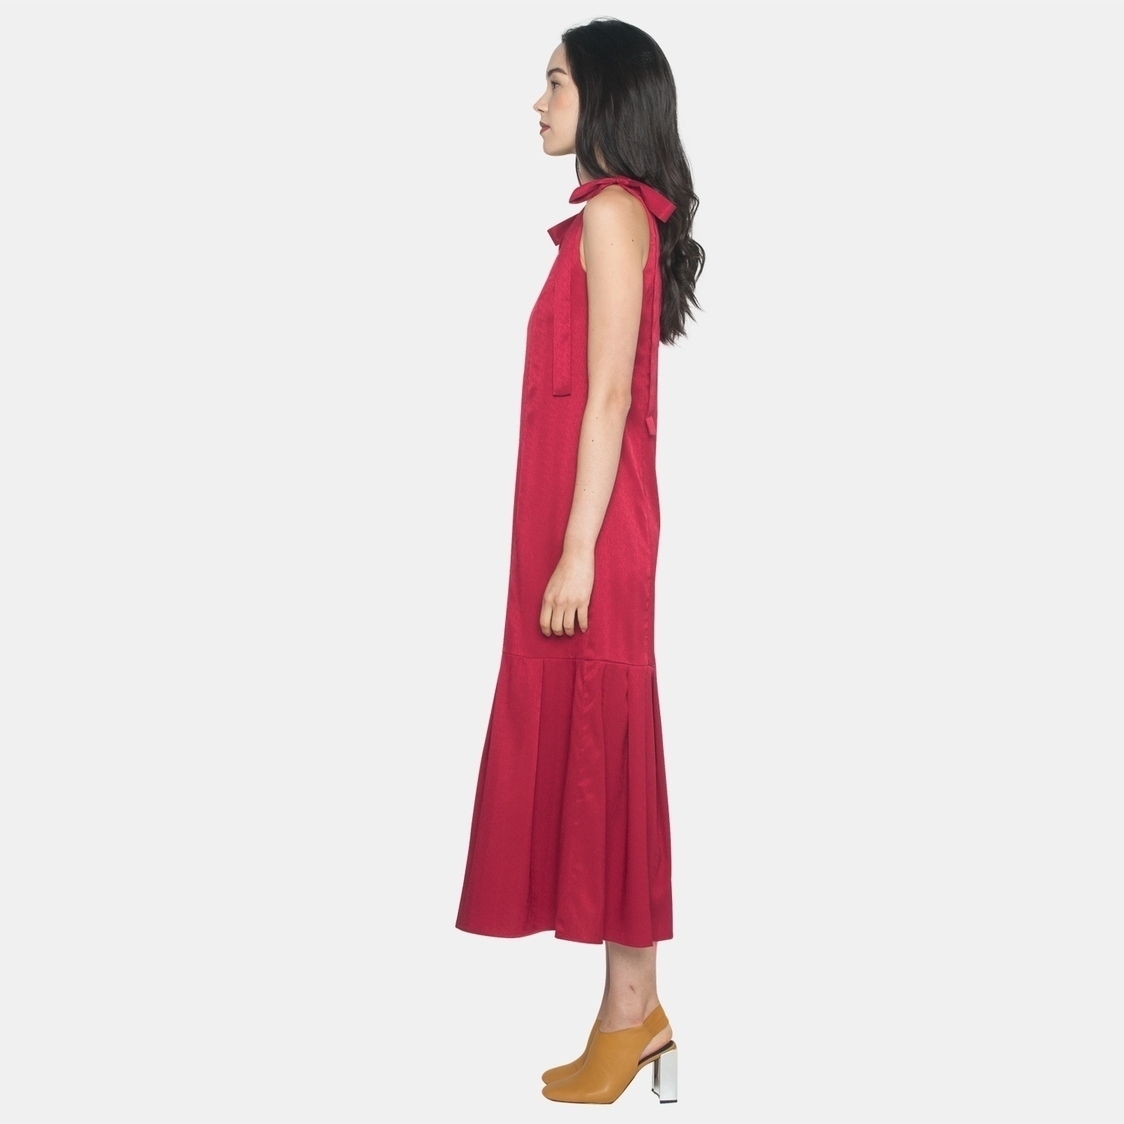 Ellysage Longline Dress with Shoulder Sash in Red